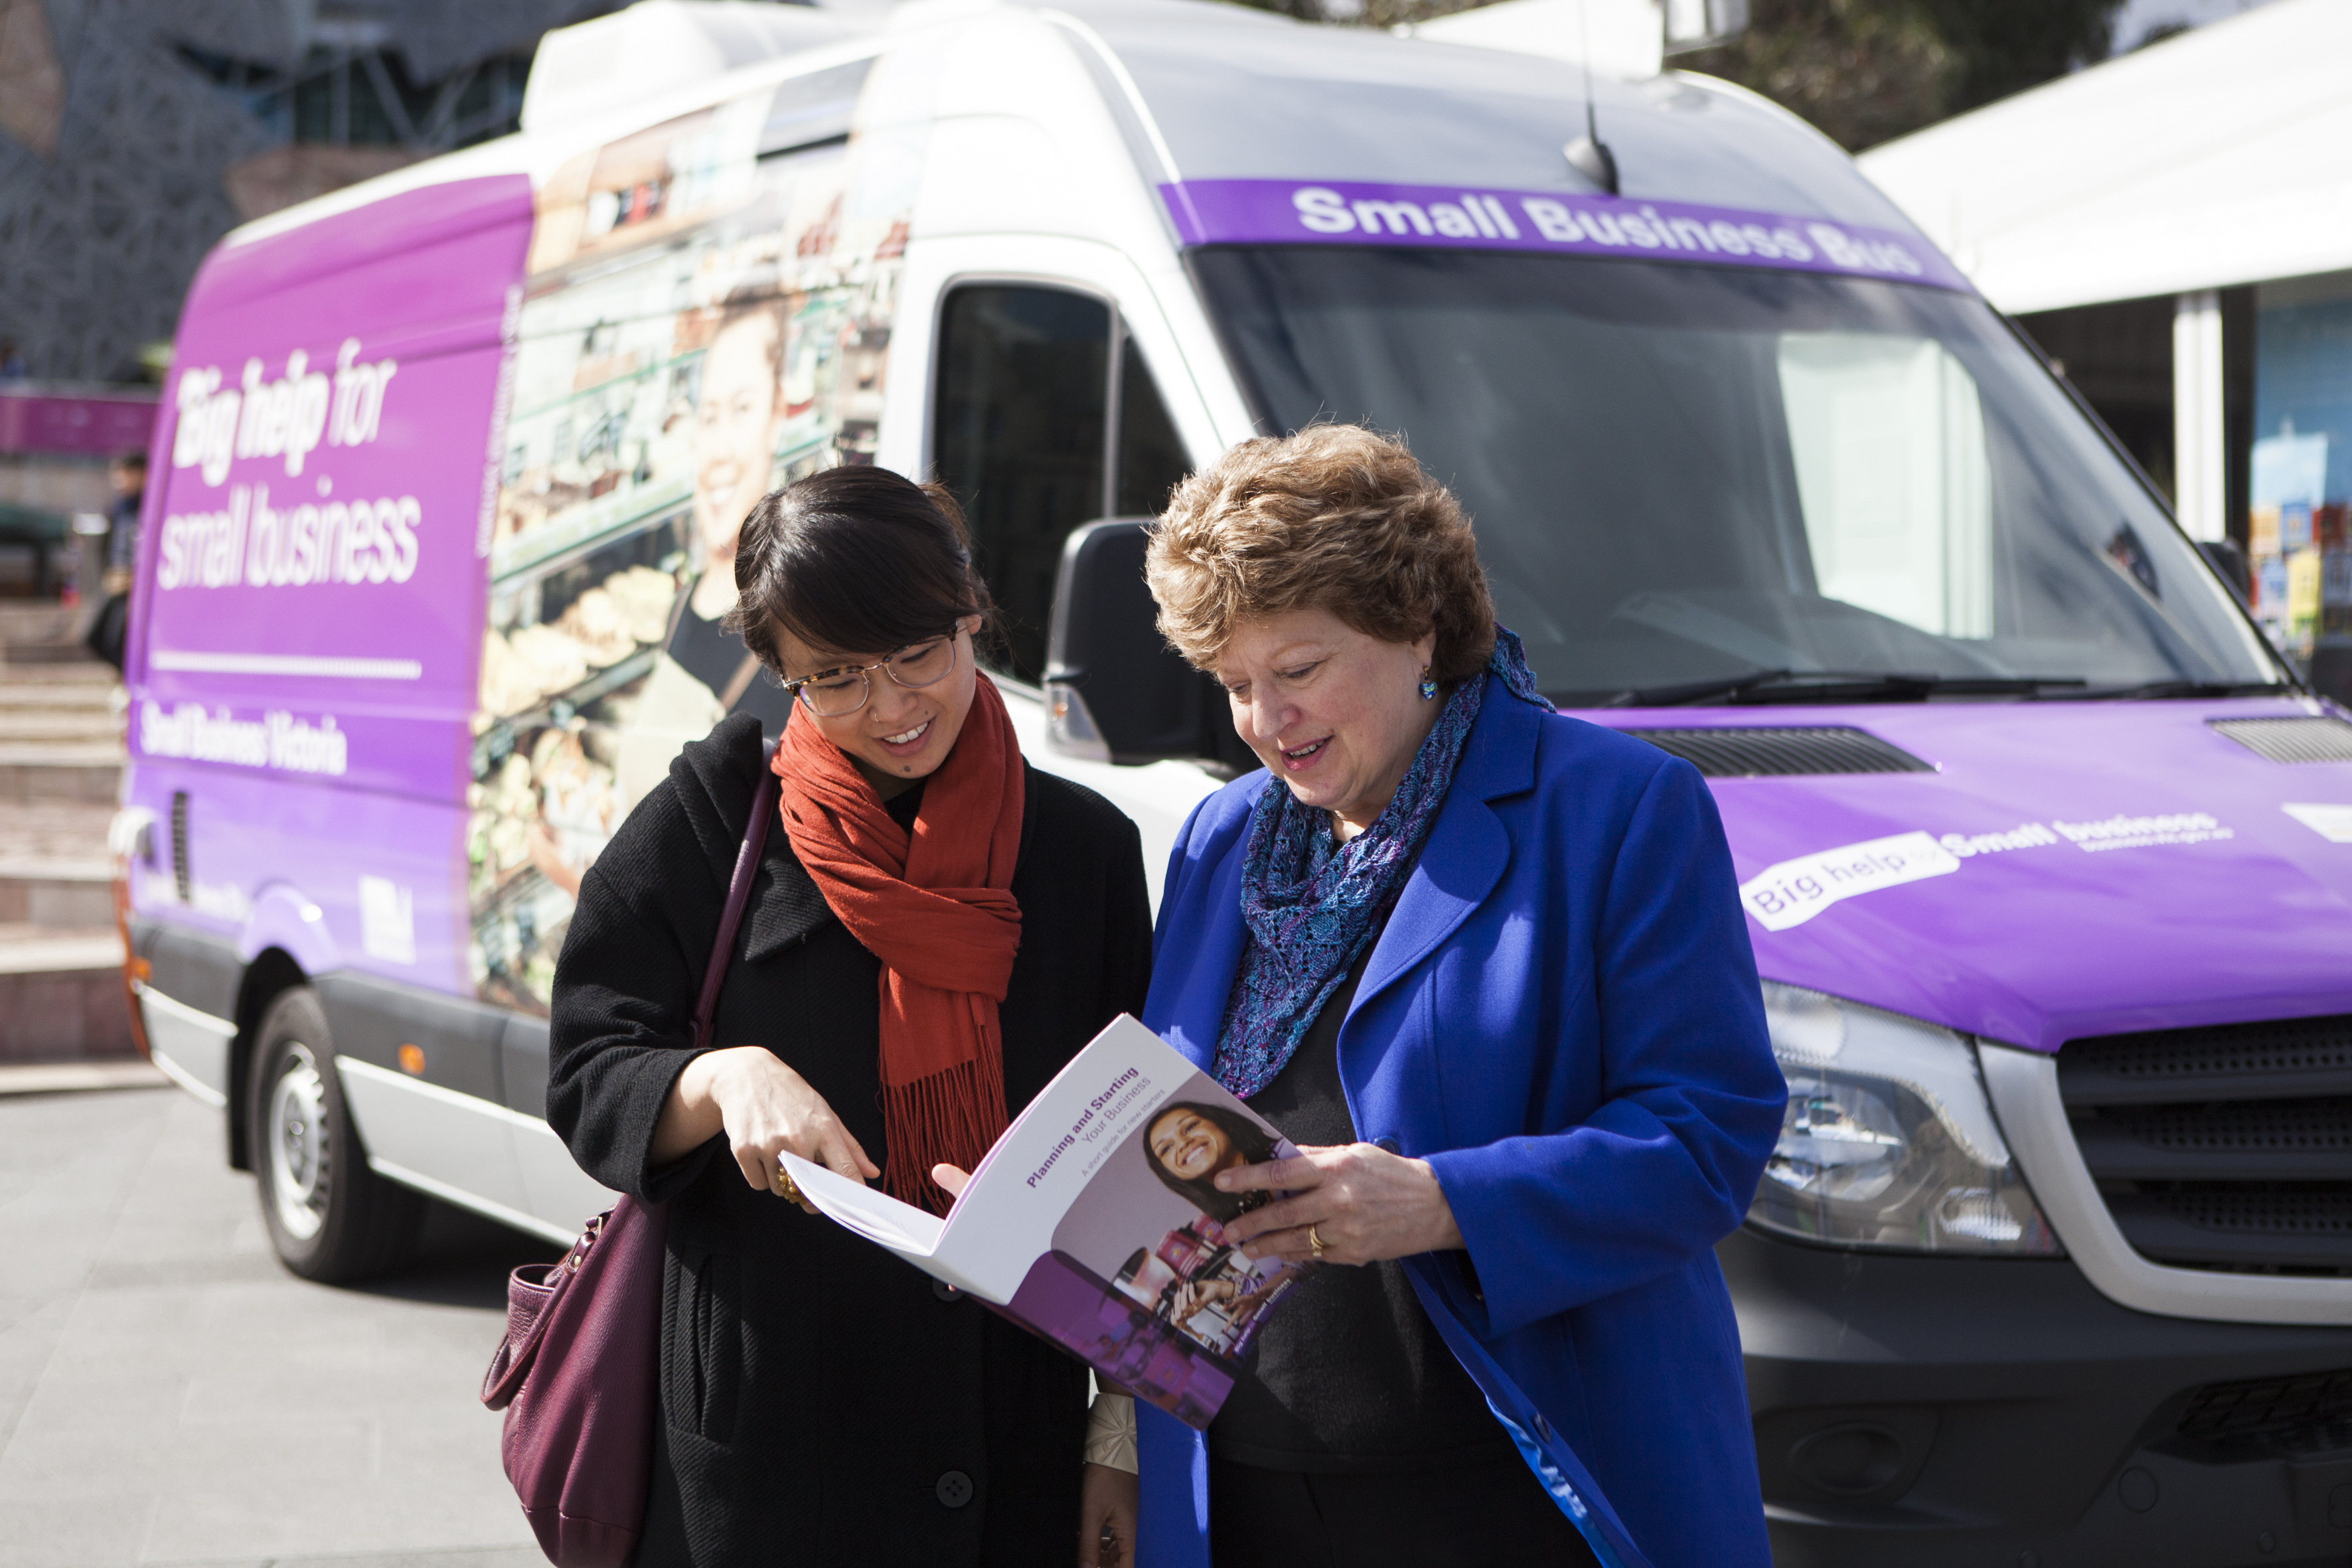 Two ladies looking at a business book outside the small business bus